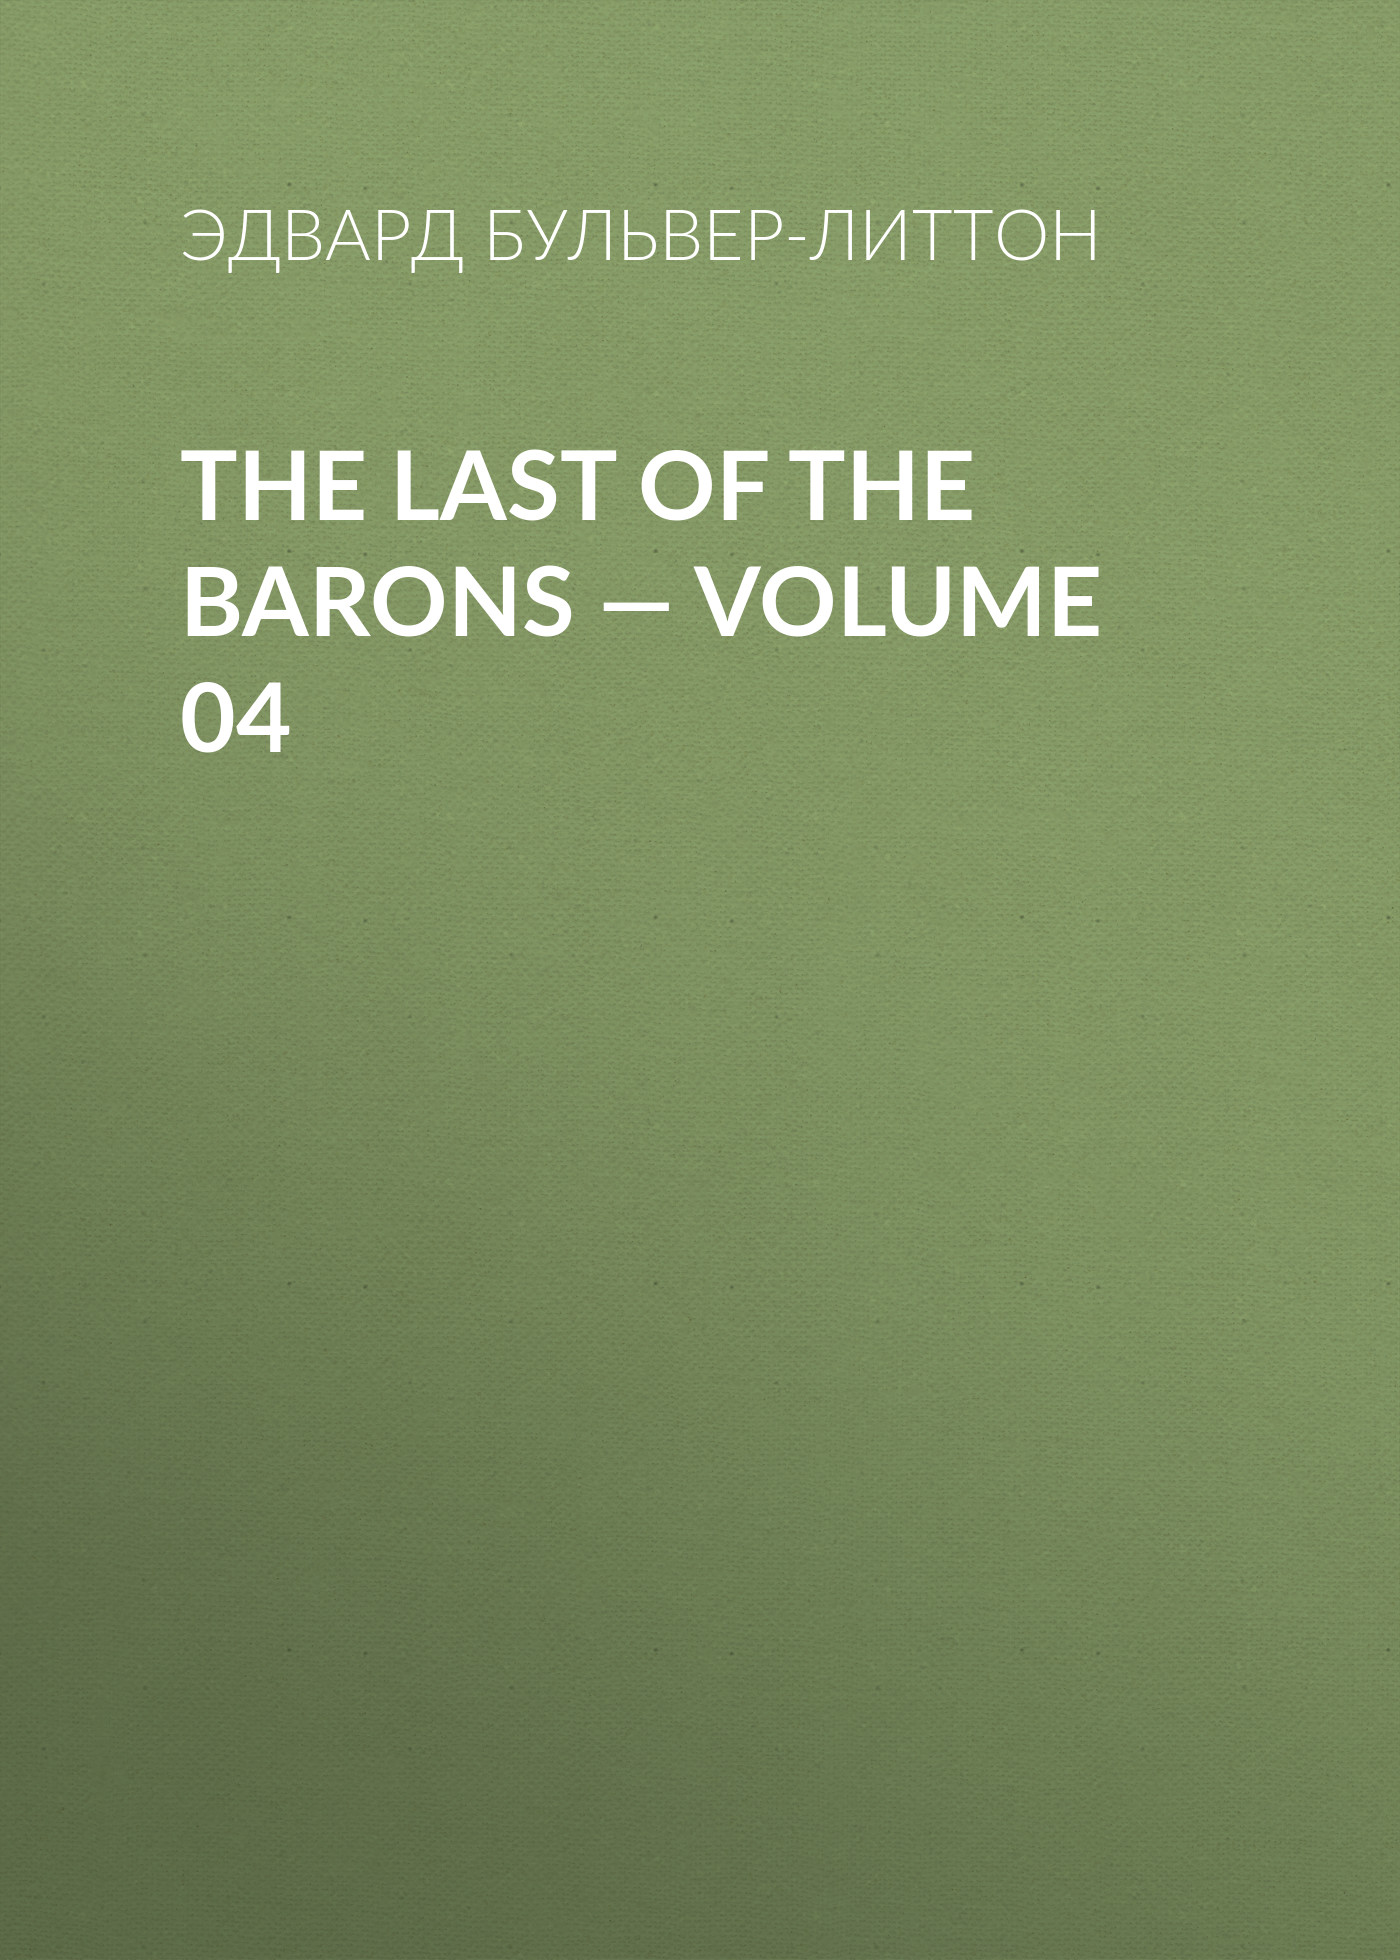 Эдвард Бульвер-Литтон The Last of the Barons — Volume 04 fayrene preston the barons of texas tess